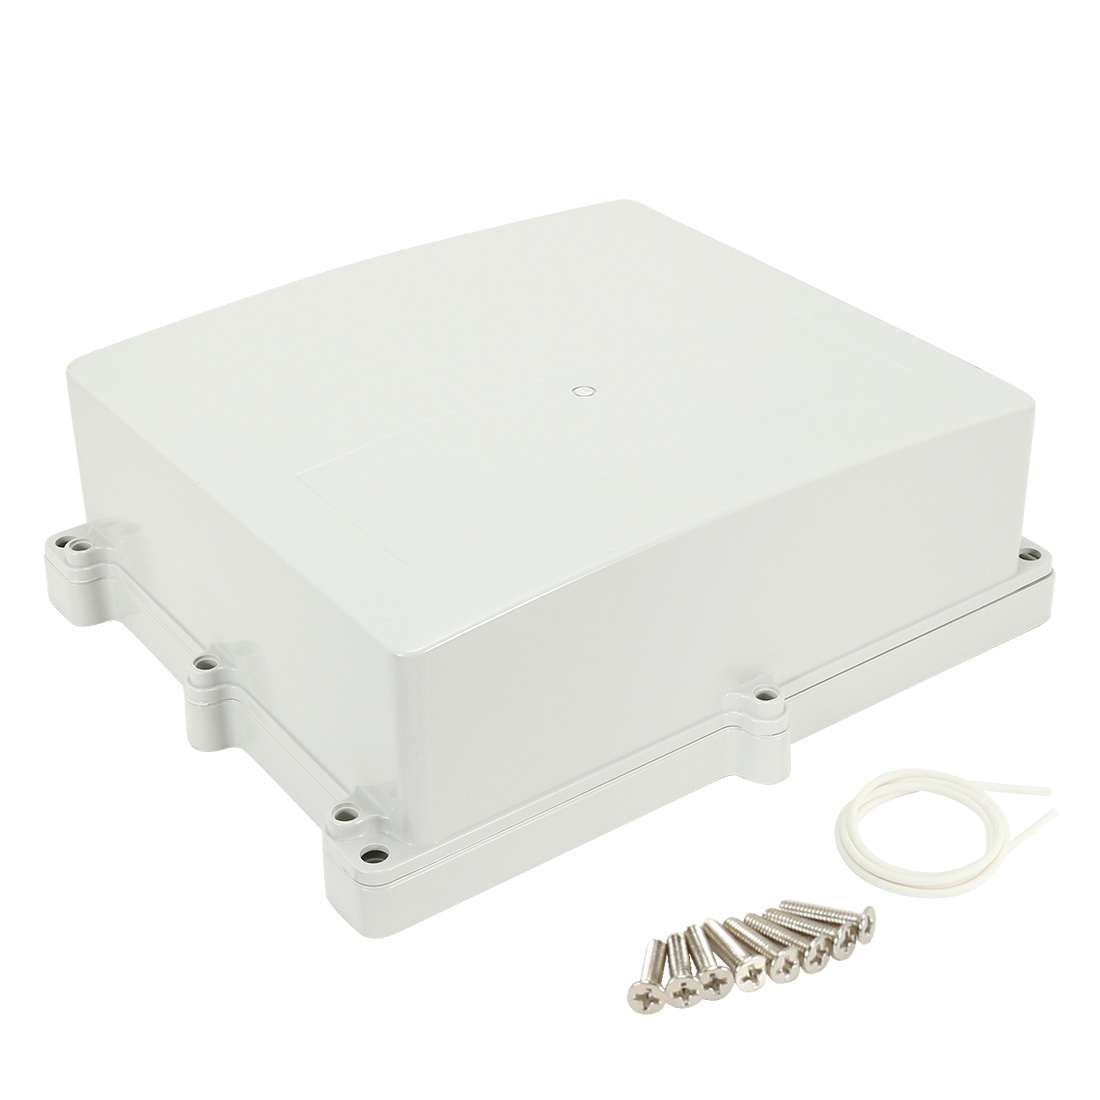 "4.4""x10.6""x12""(112mmx270mmx300mm) ABS Junction Box Universal Electric Project Enclosure"